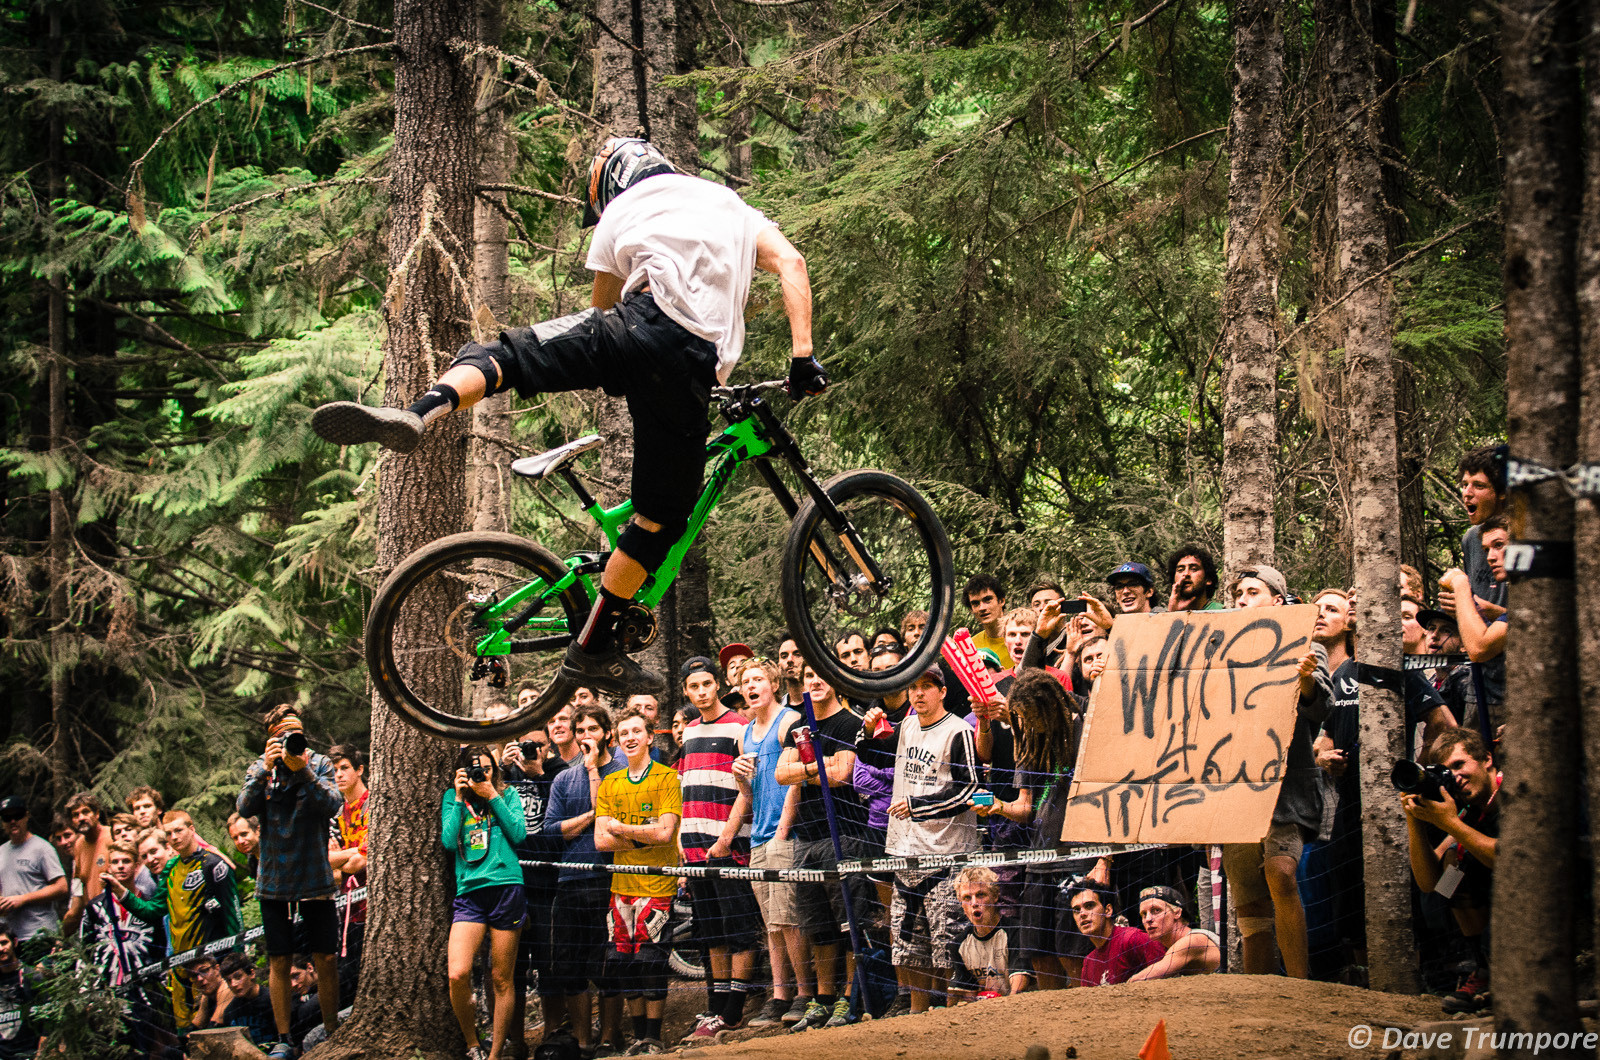 It's Still All About the Whip at Crankworx Air DH - Crankworx Whistler Air DH - Mountain Biking Pictures - Vital MTB